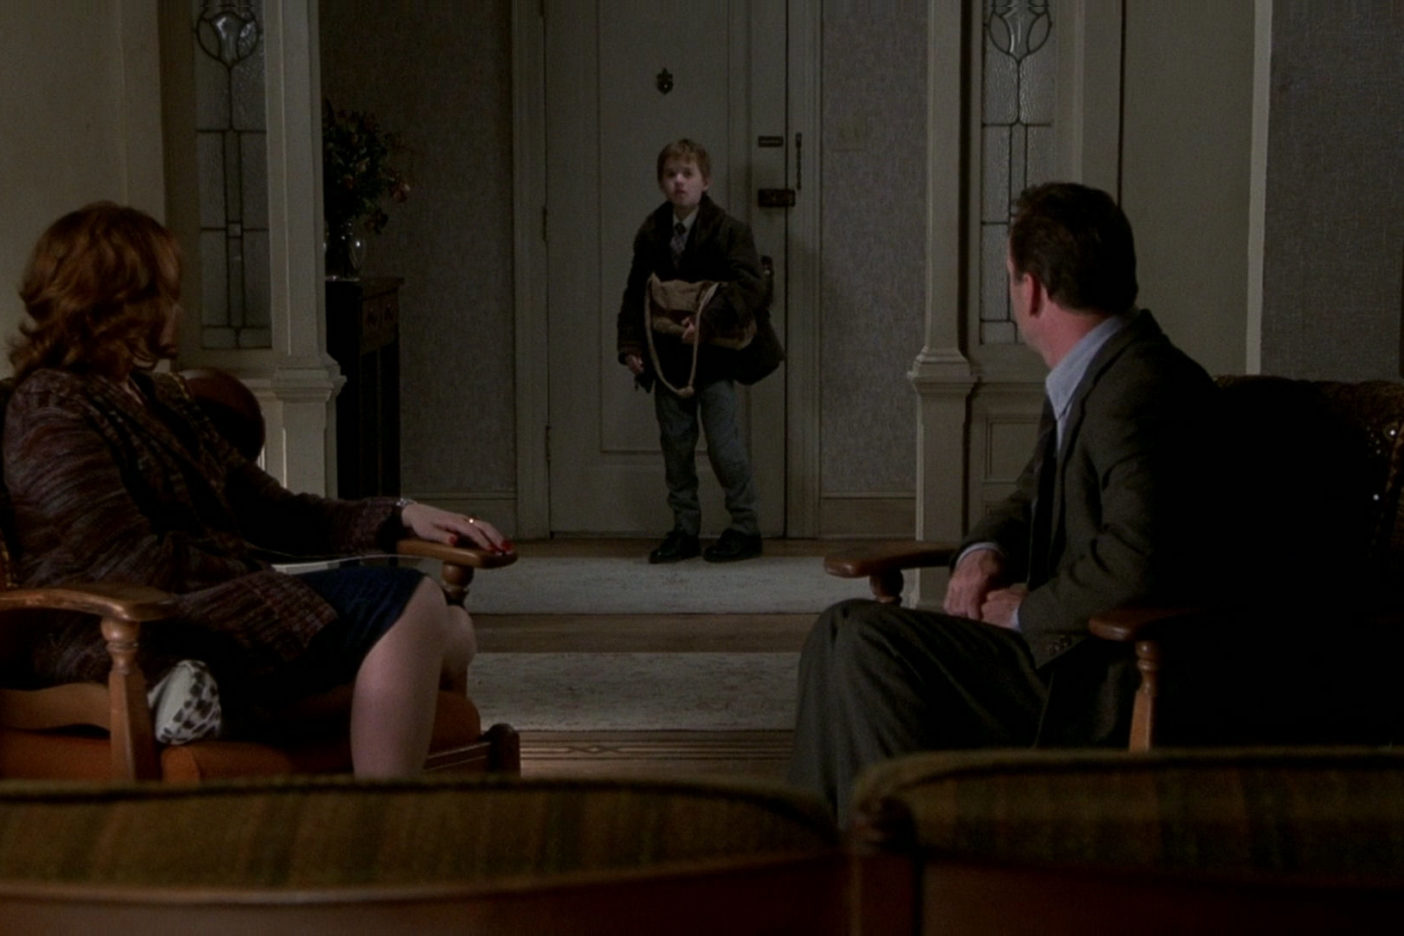 sixth sense m night shyamalan